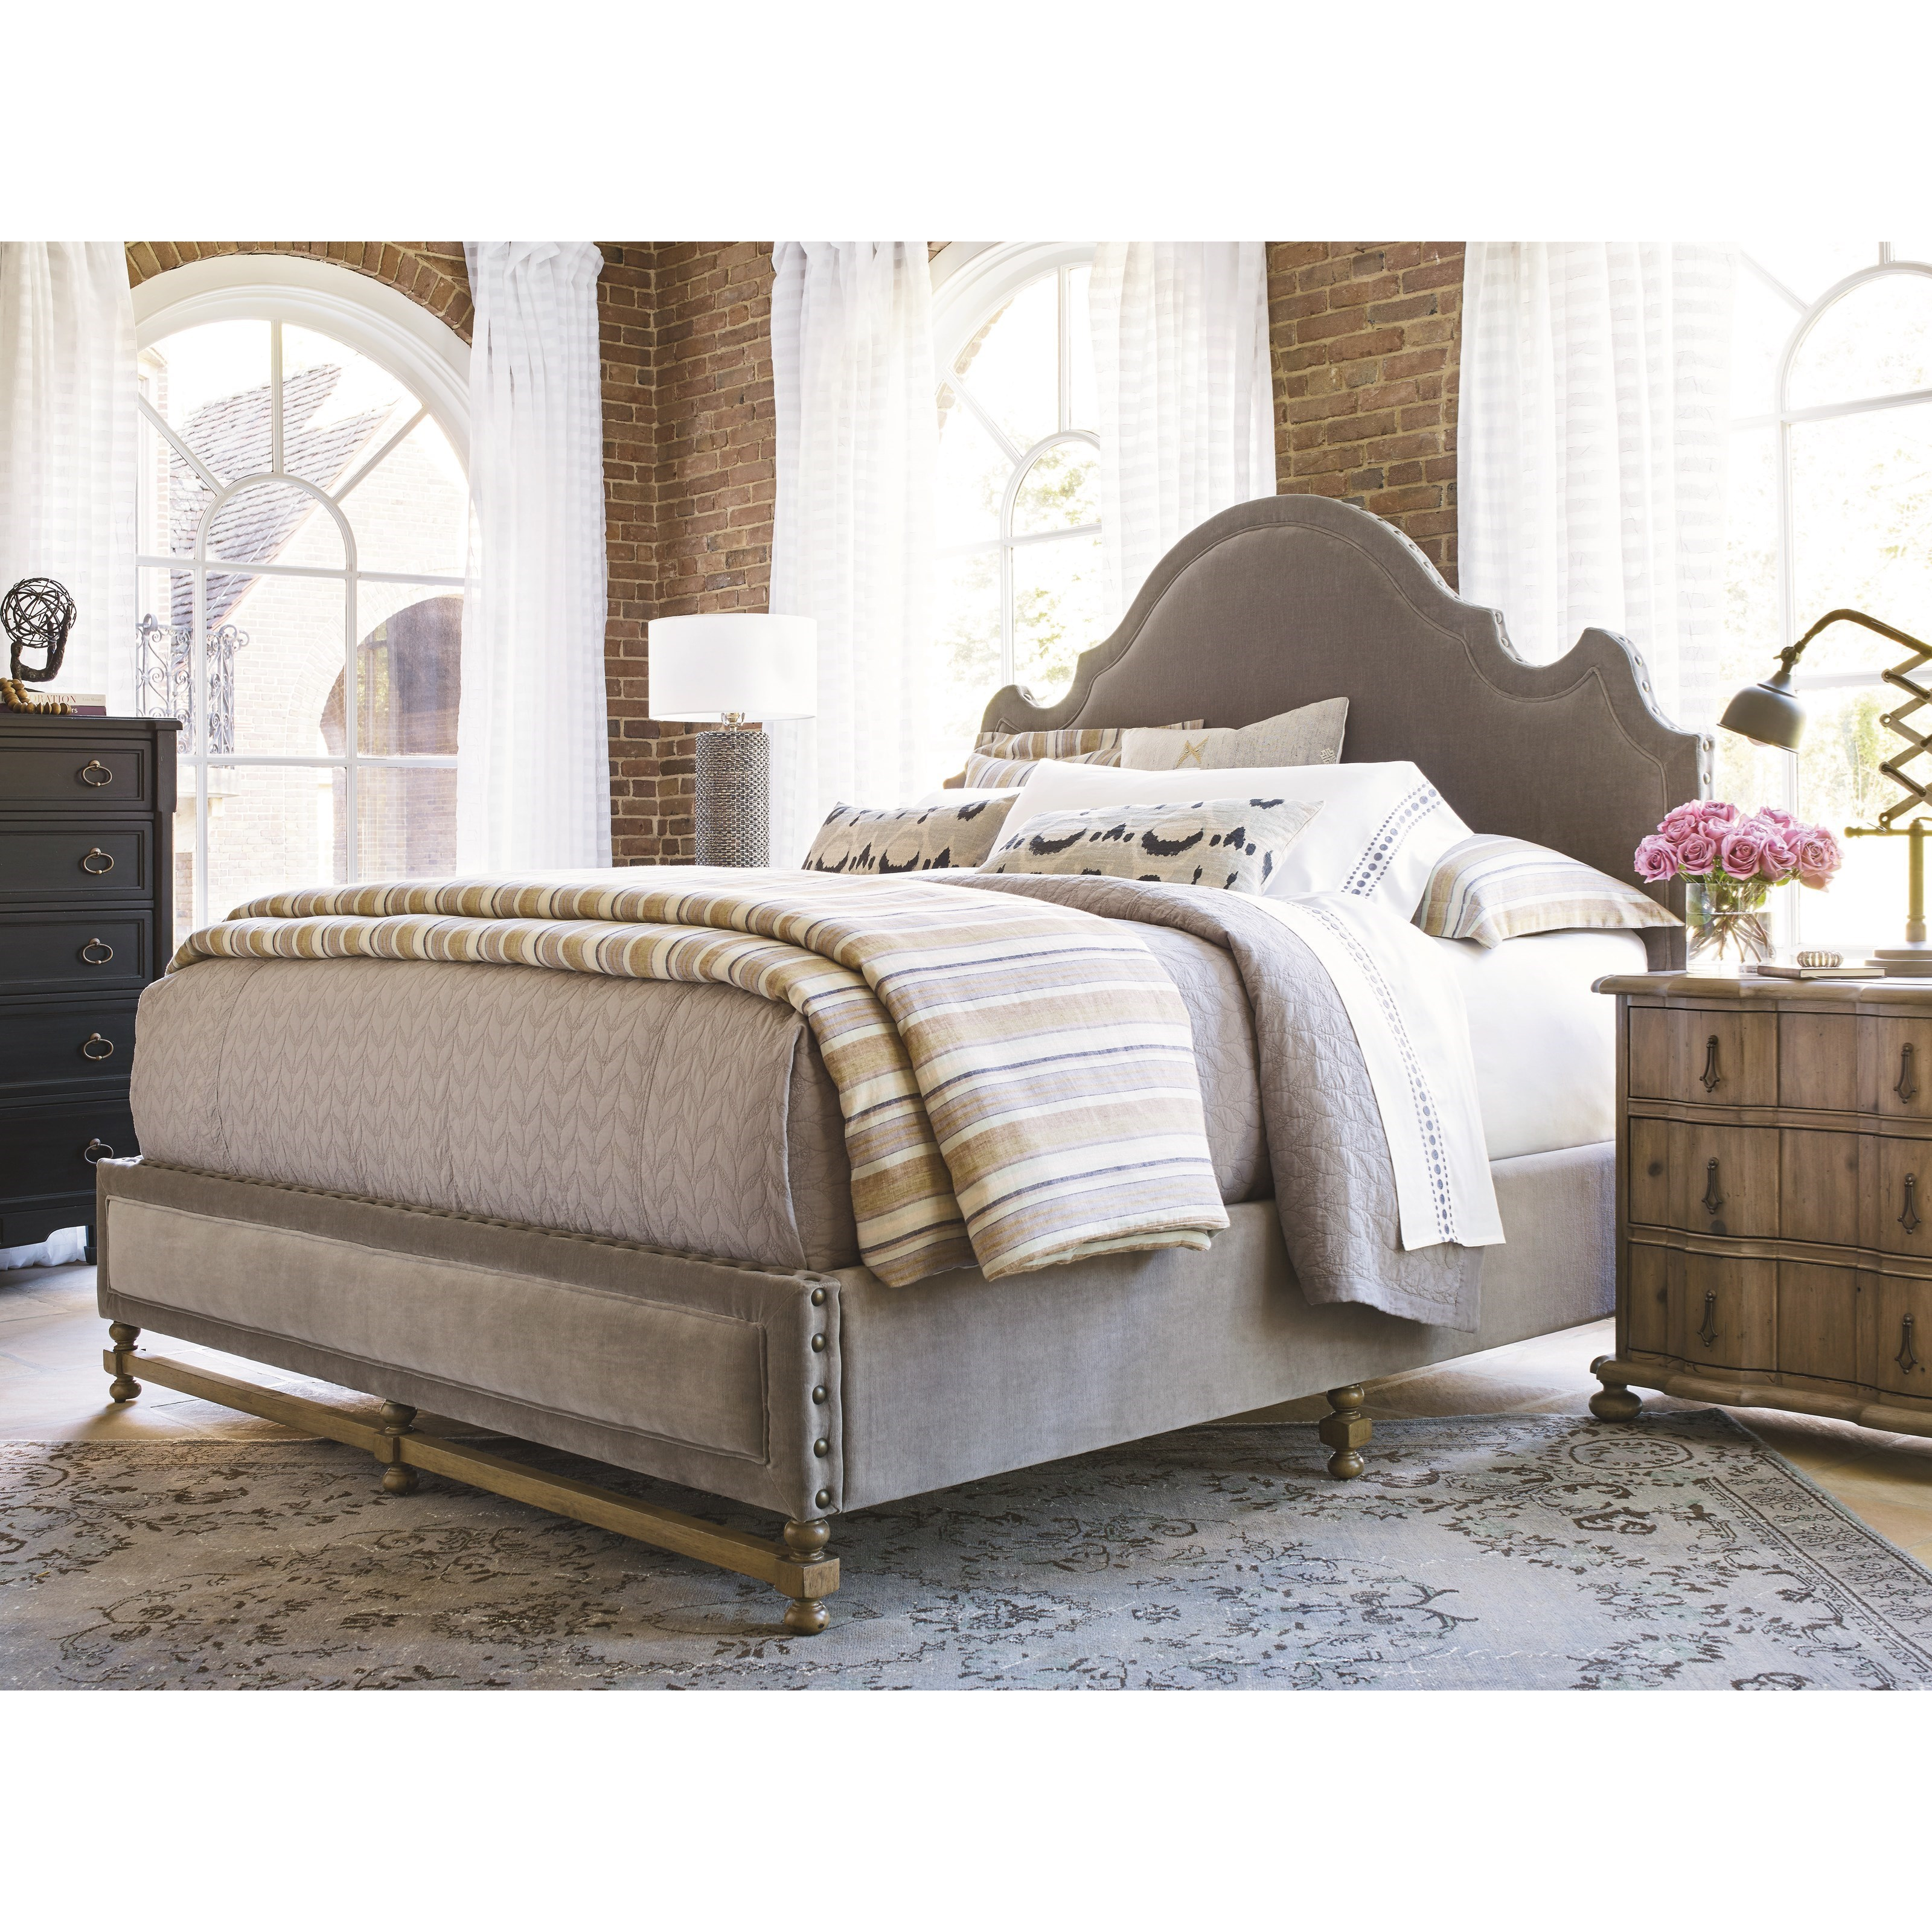 Universal authenticity california king bedroom group for Bedroom groups